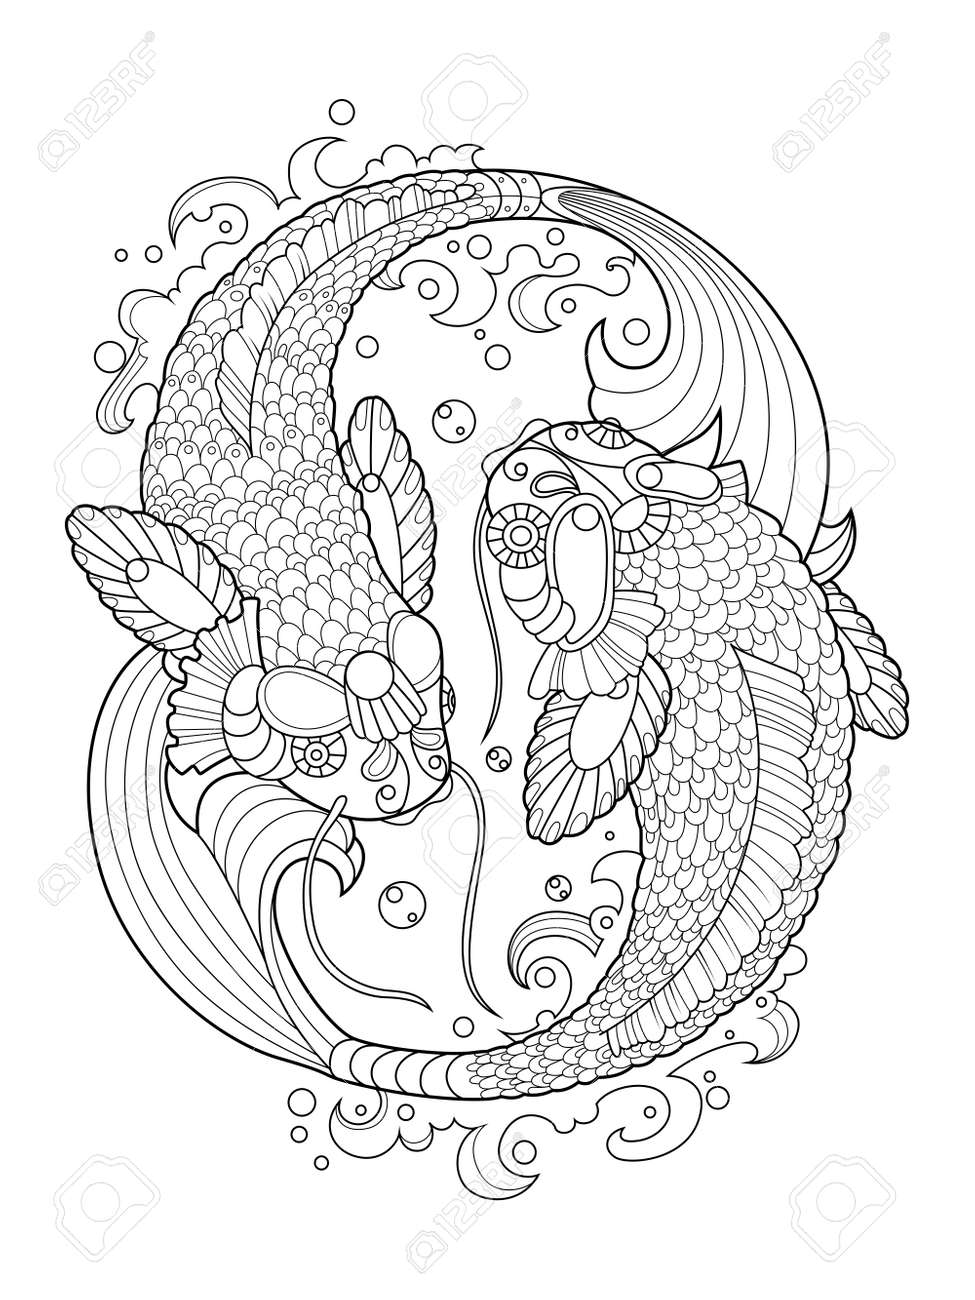 Koi Carp Fish Coloring Book For Adults Vector Illustration Anti Stress Royalty Free Cliparts Vectors And Stock Illustration Image 64821737